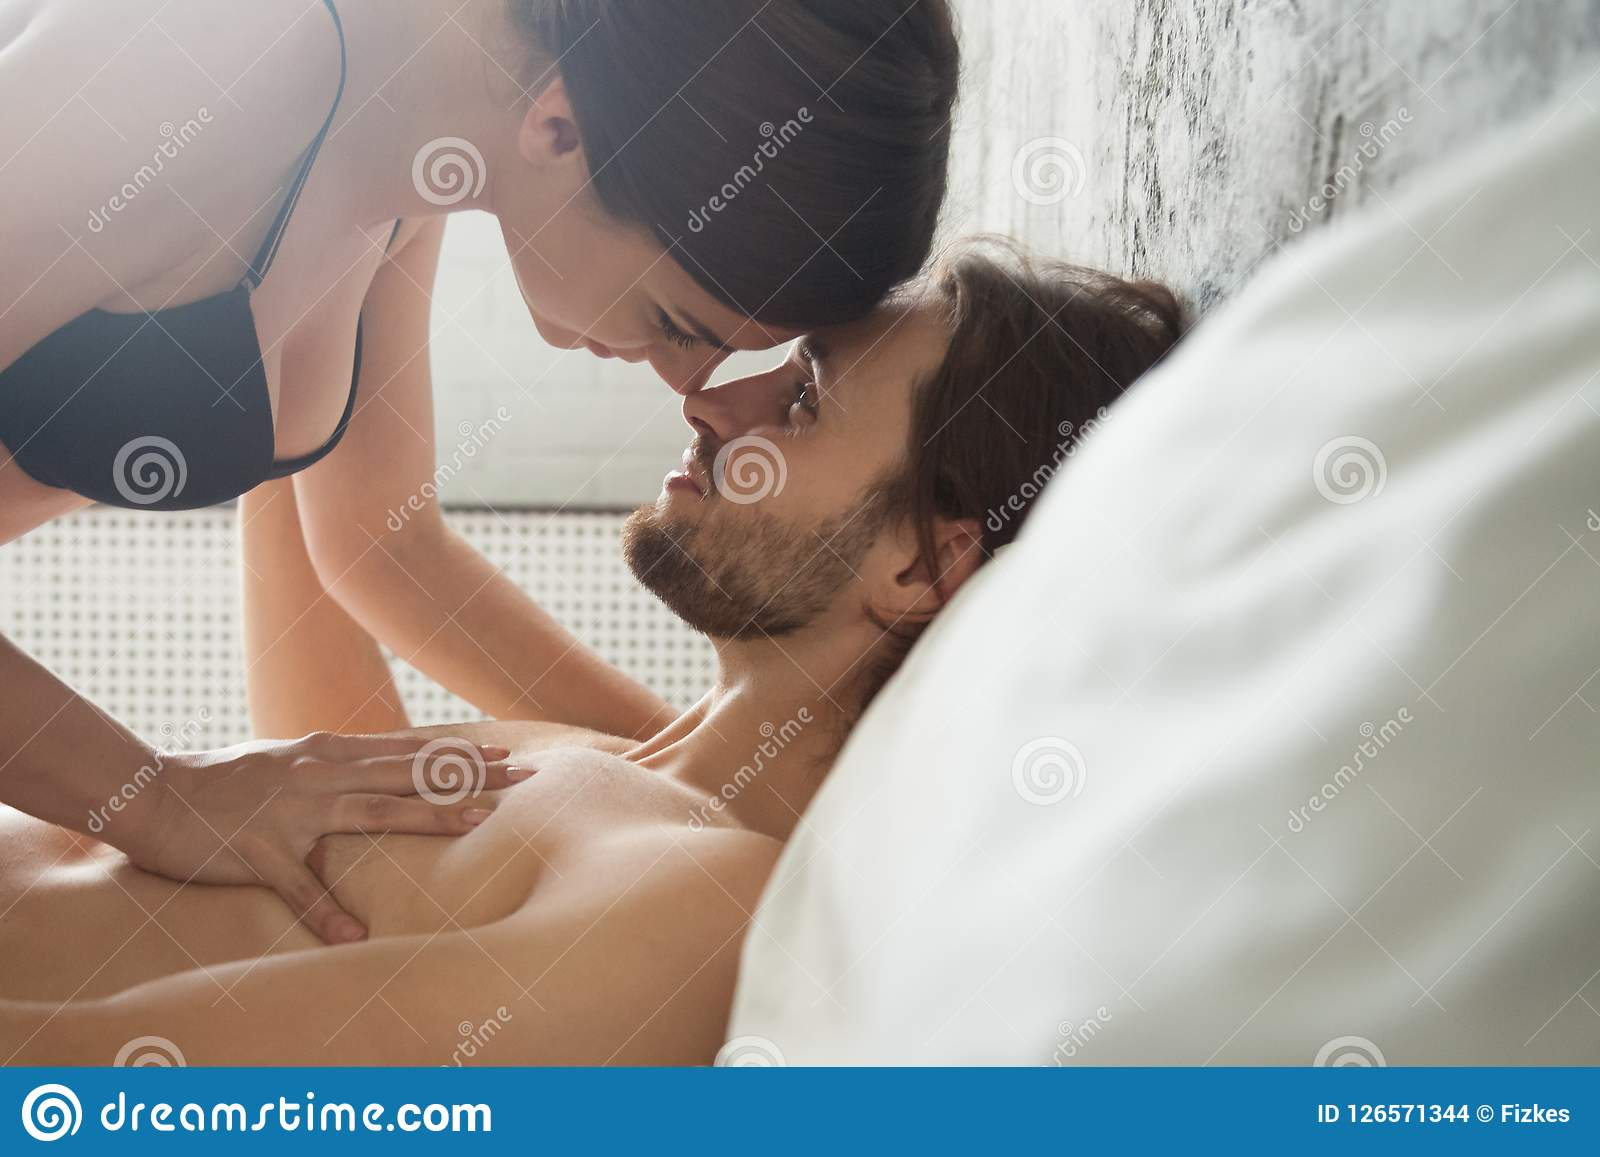 passionate lovers sex